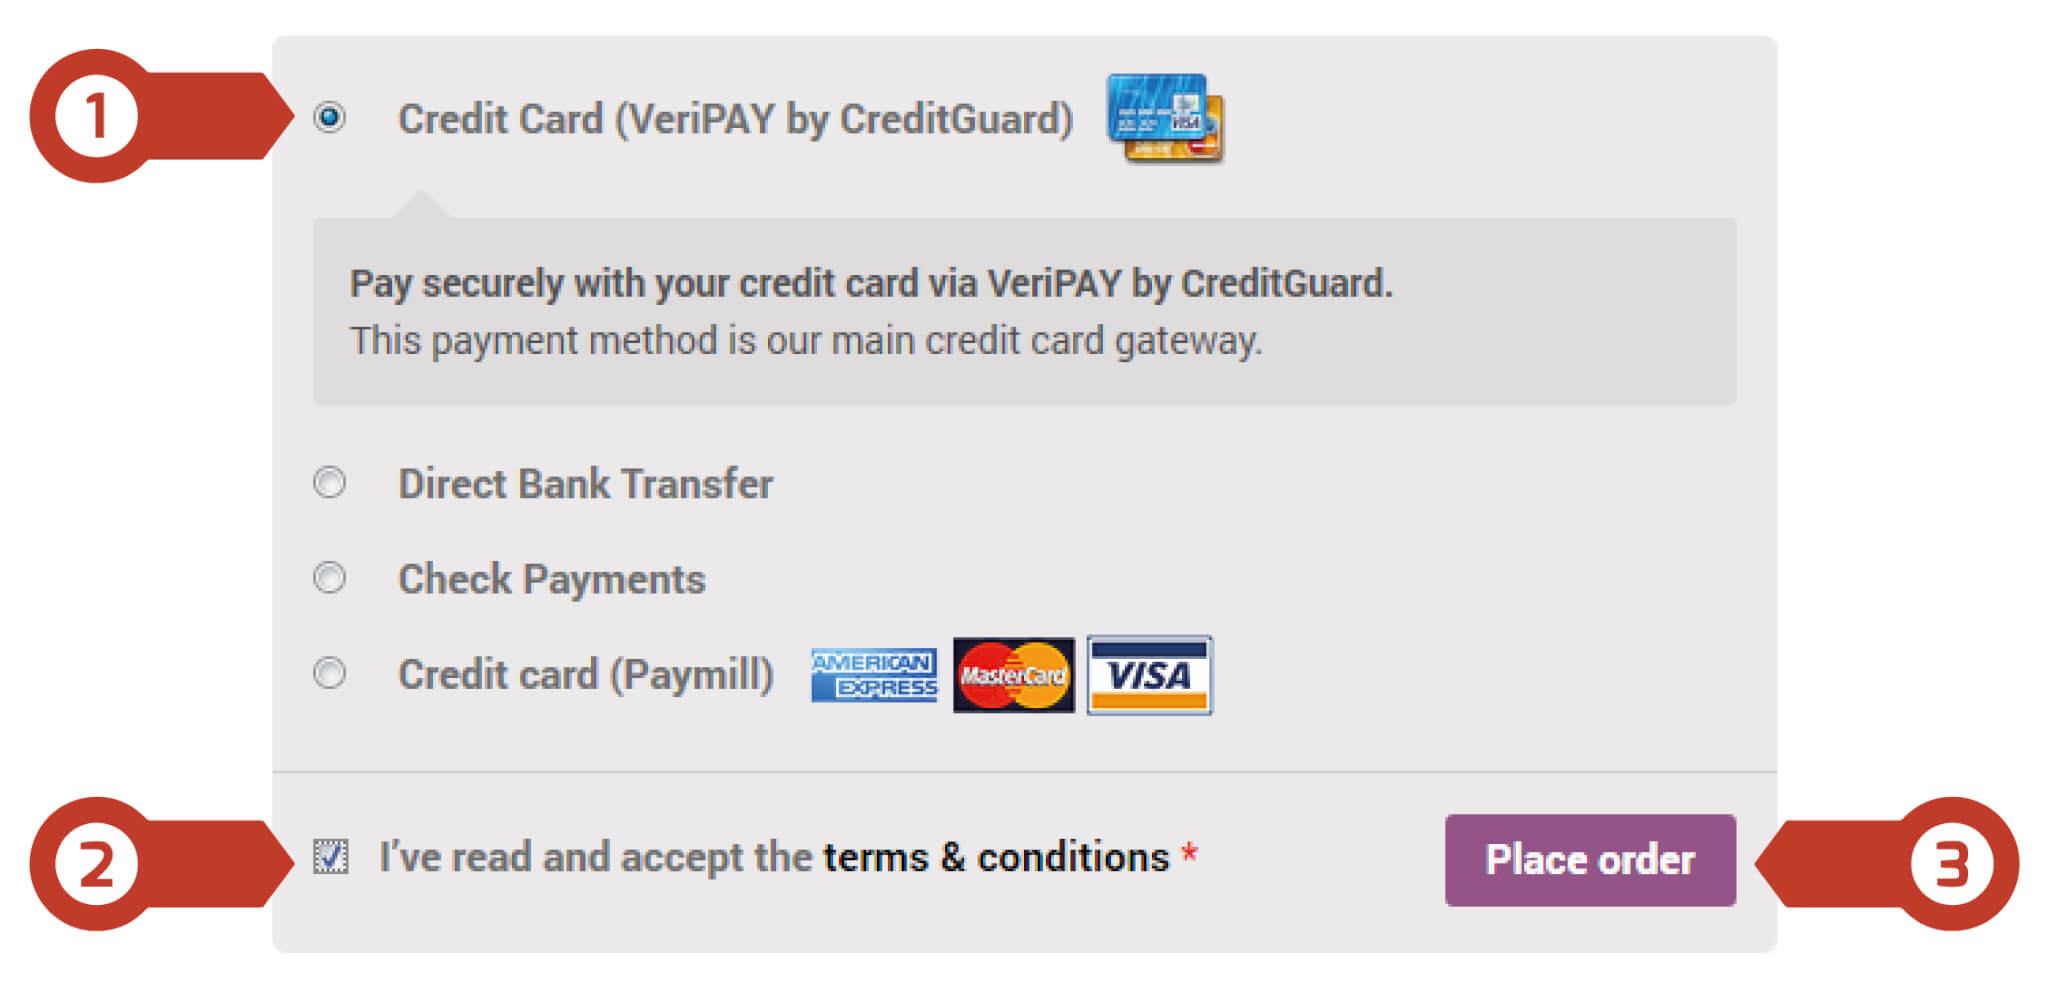 choosing the payment method